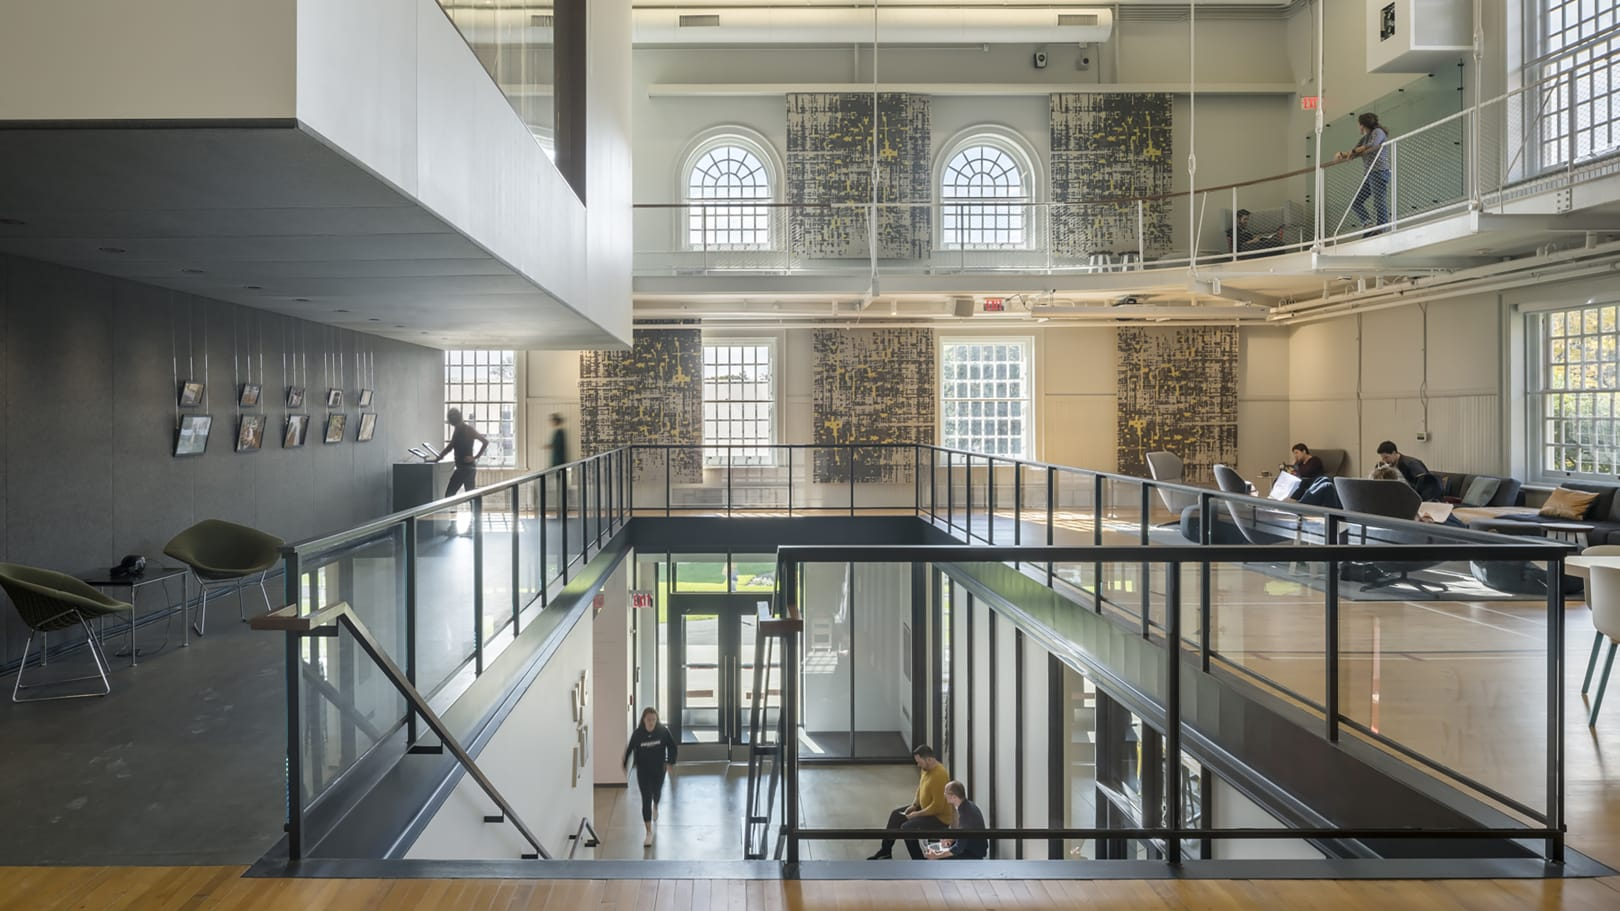 Haverford College Visual Culture, Arts, and Media (VCAM) Building